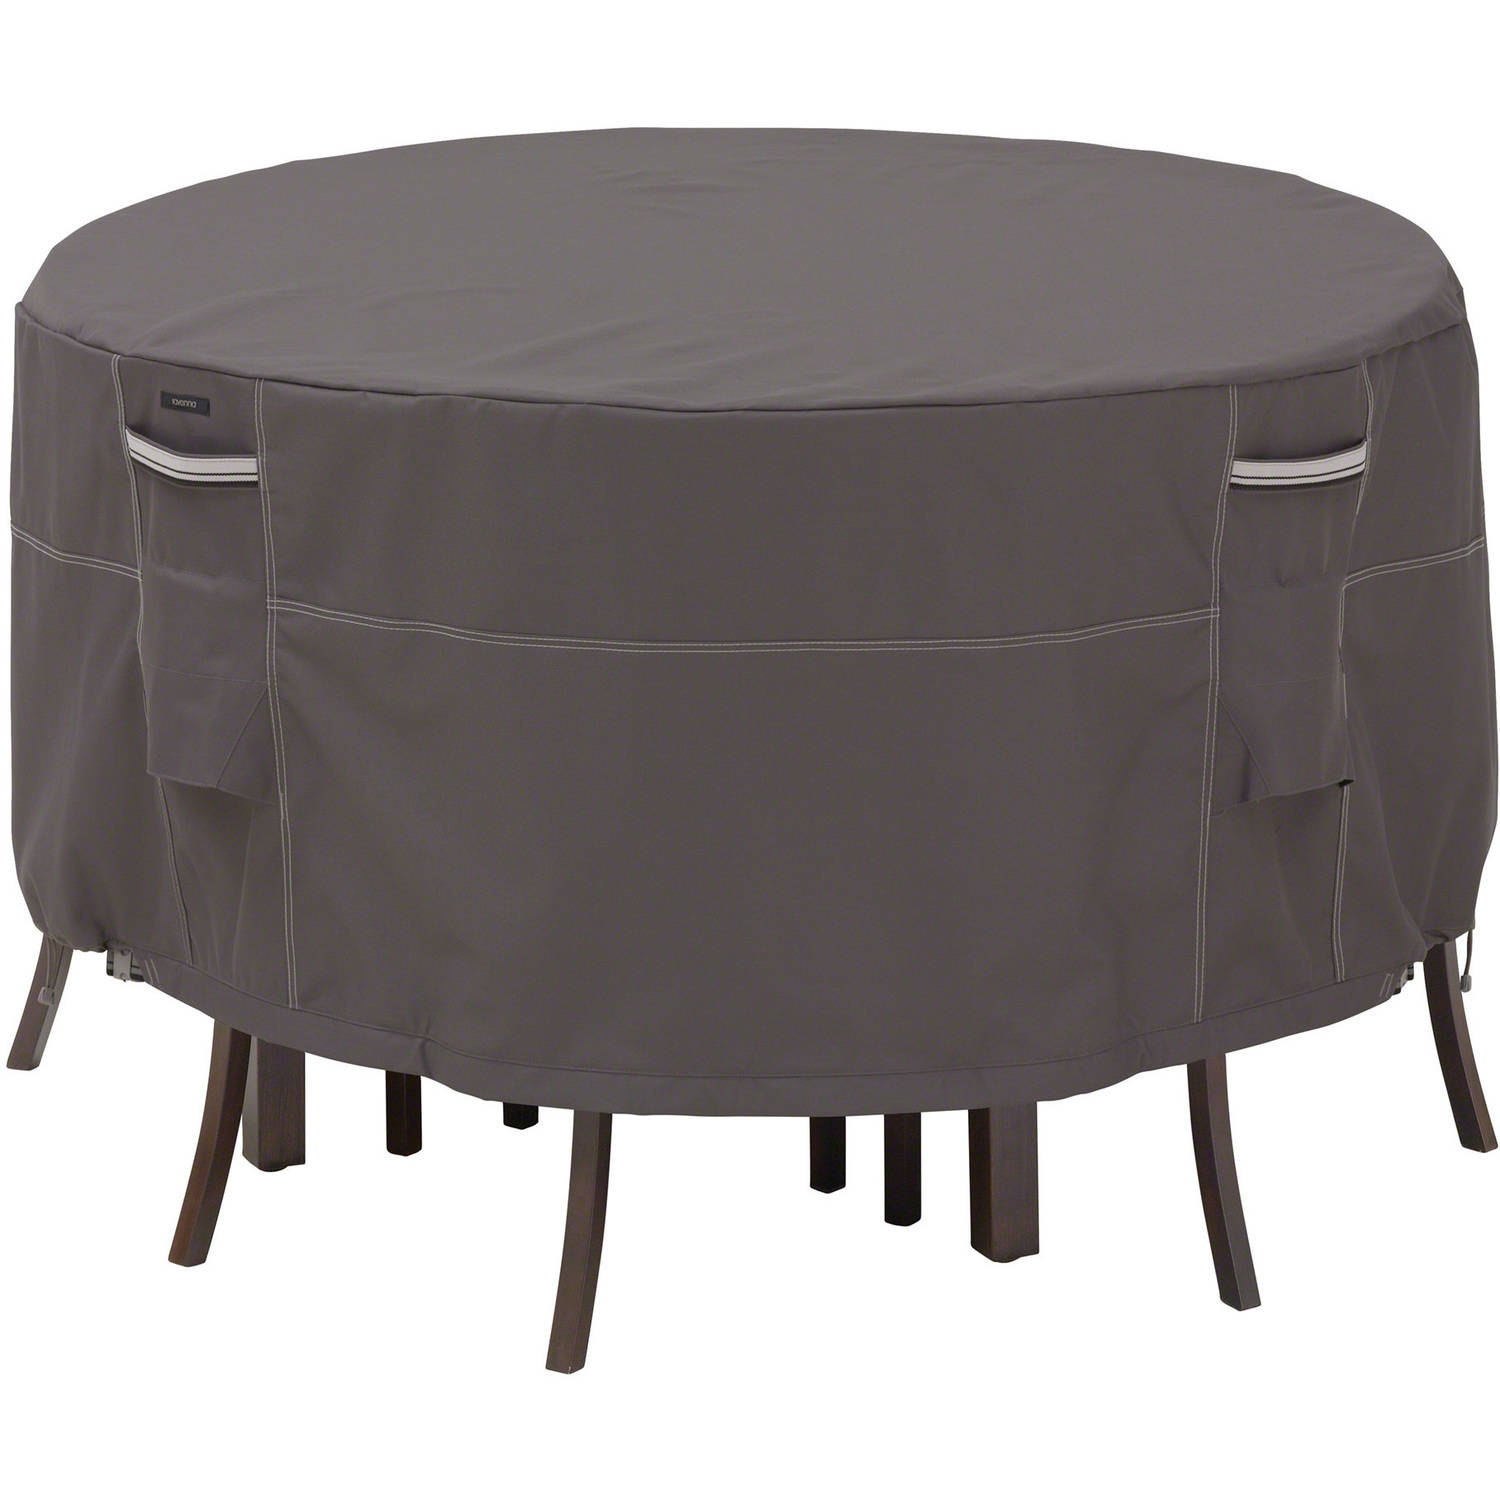 Classic Accessories Ravenna Round Small Patio Table and Chair Furniture  Storage Cover, Fits Tables up to 60